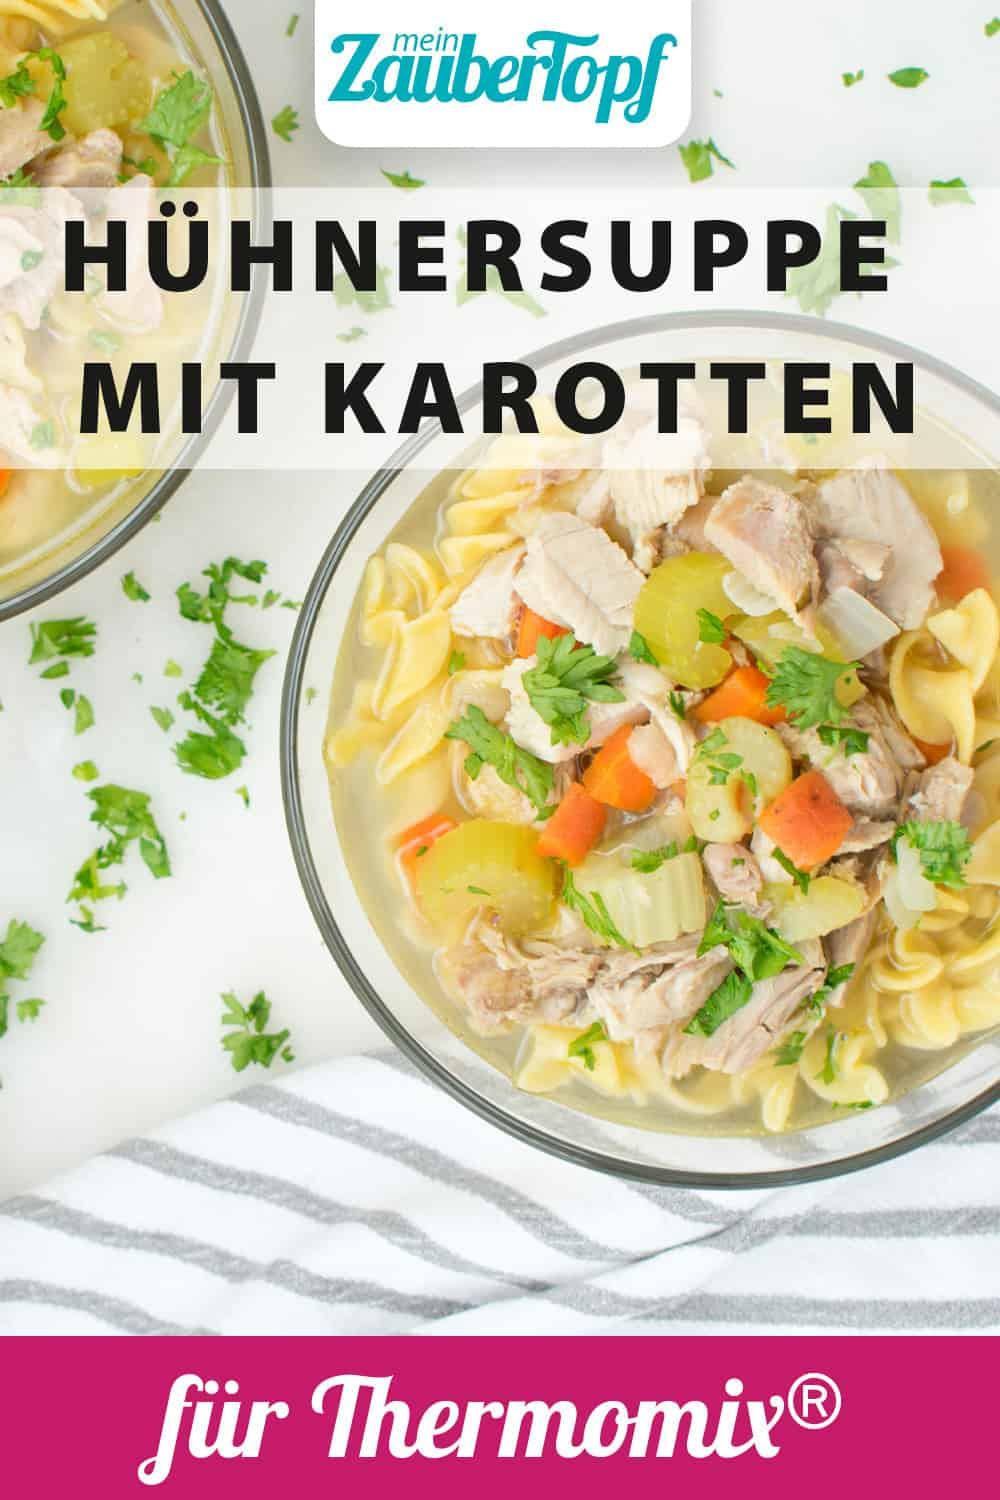 Hühnersuppe mit dem Thermomix® –Foto: gettyimages / Candice Bell